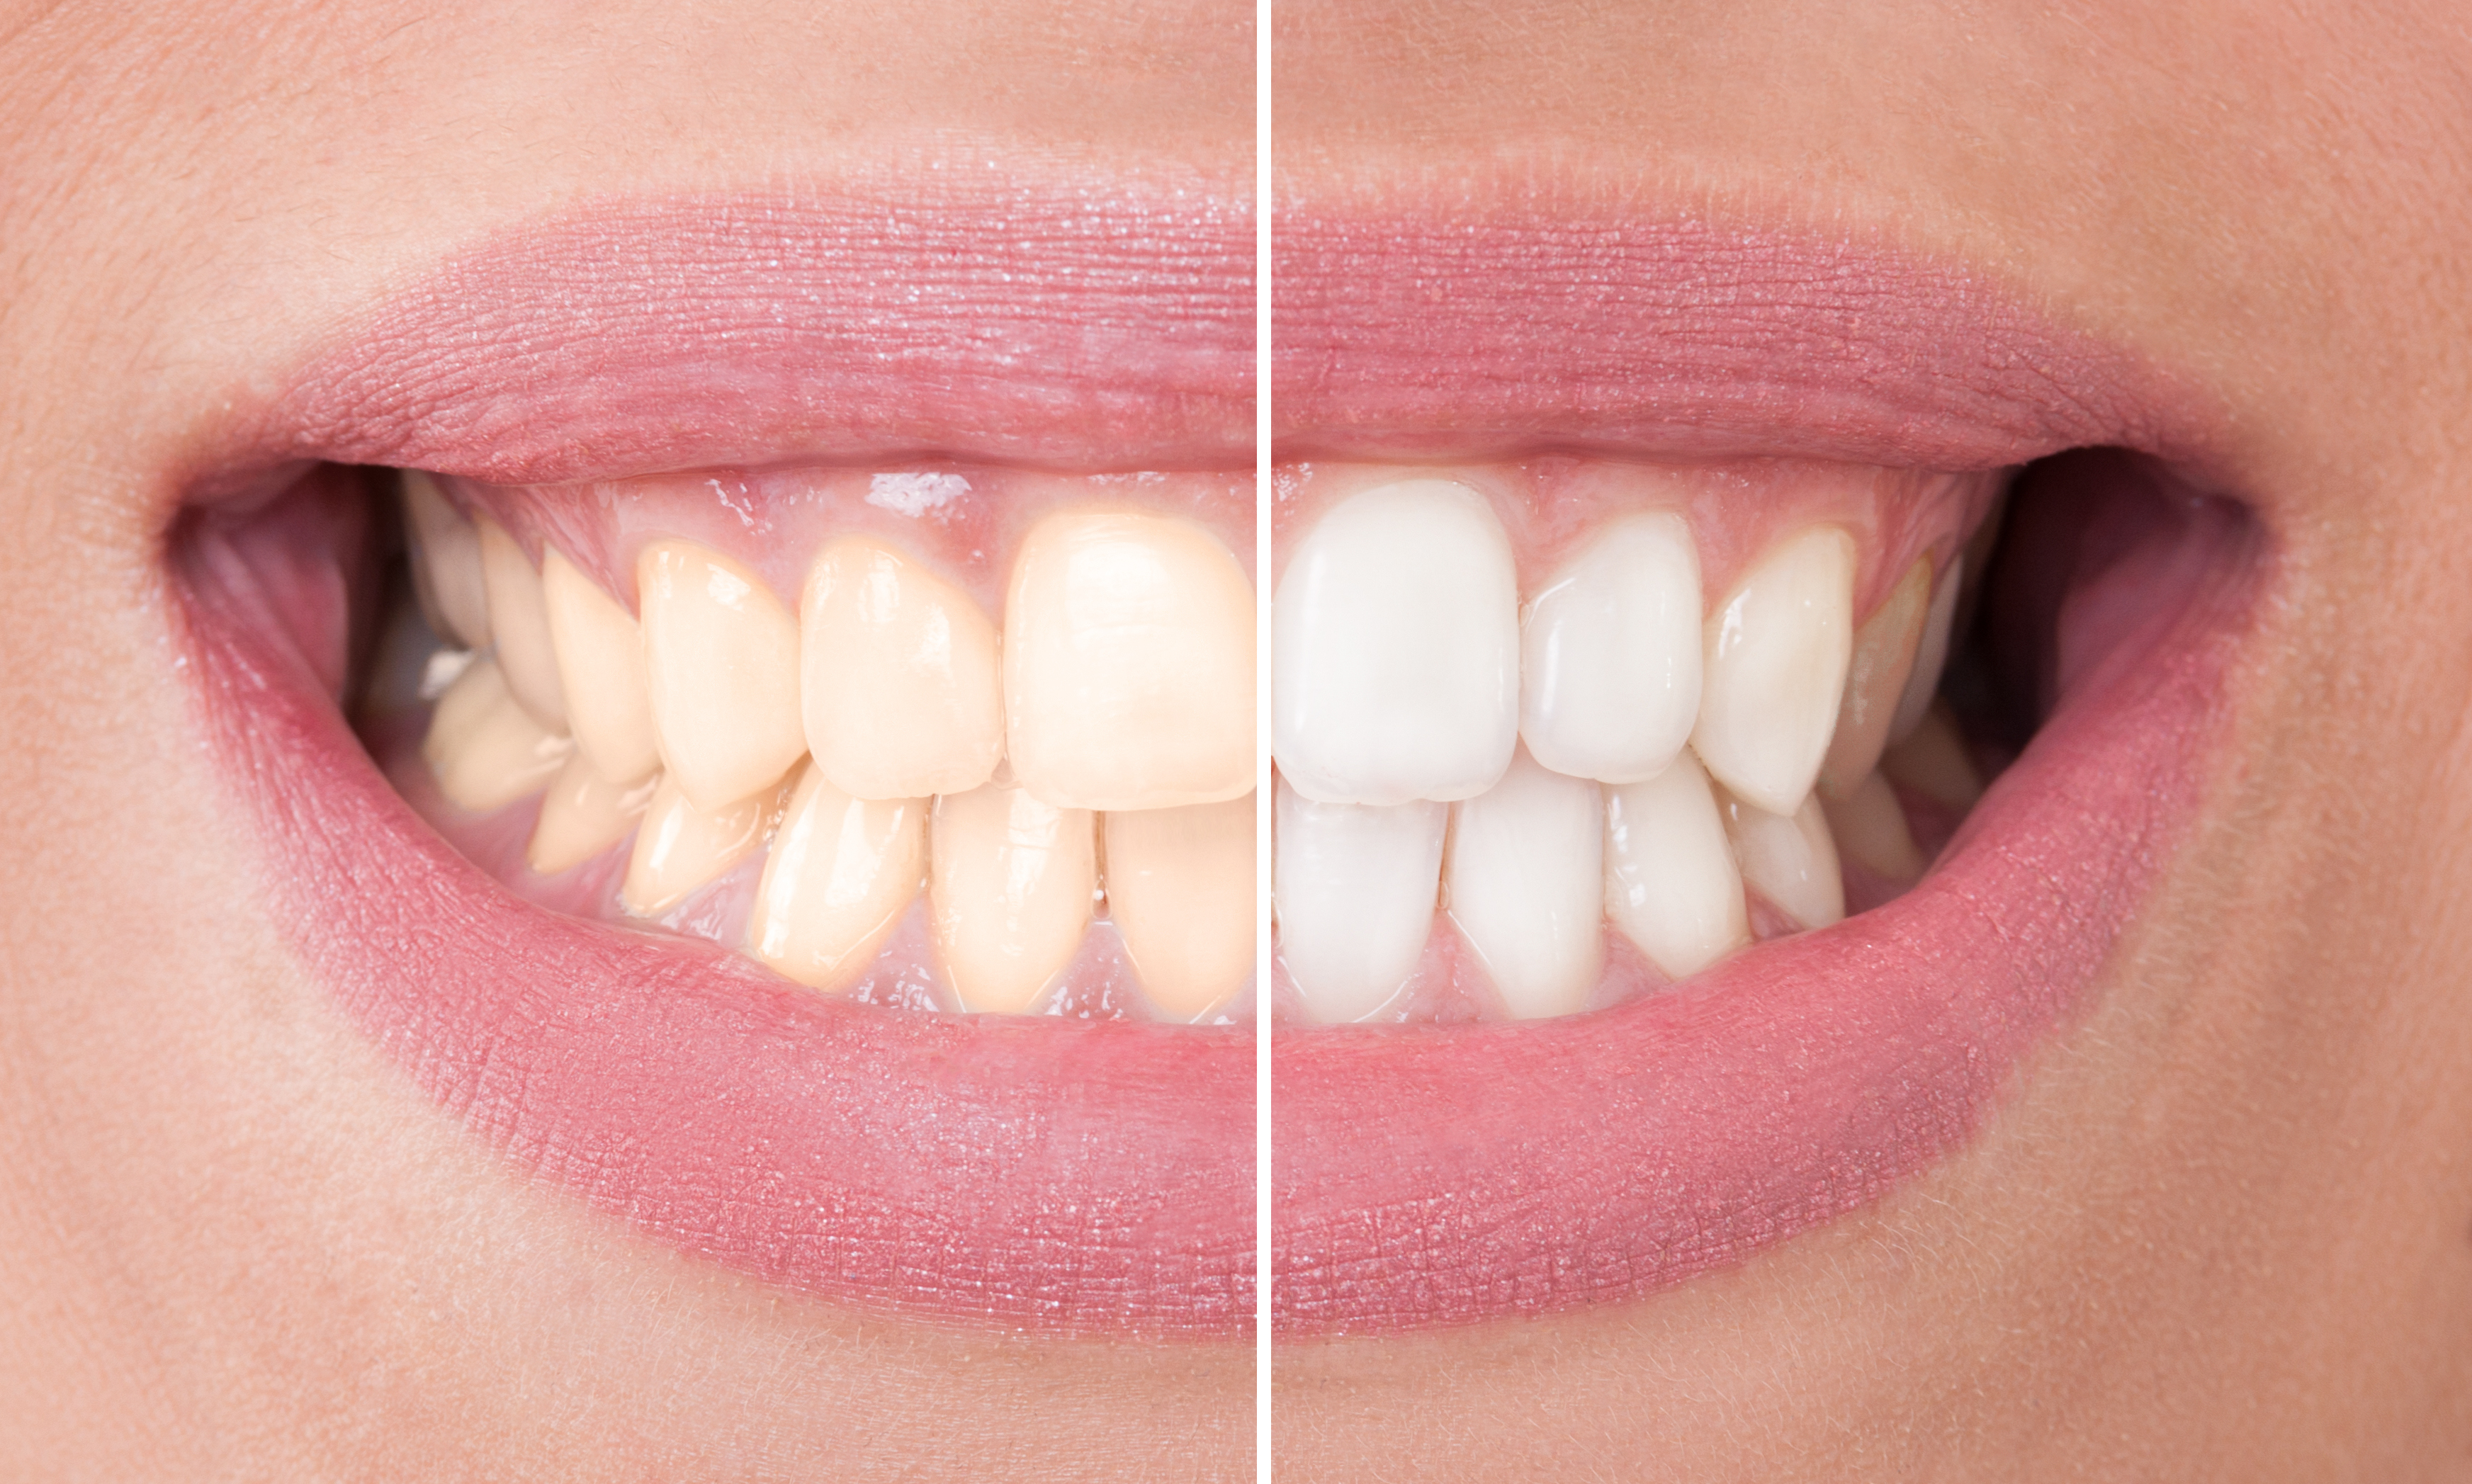 Want to get a whiter smile?